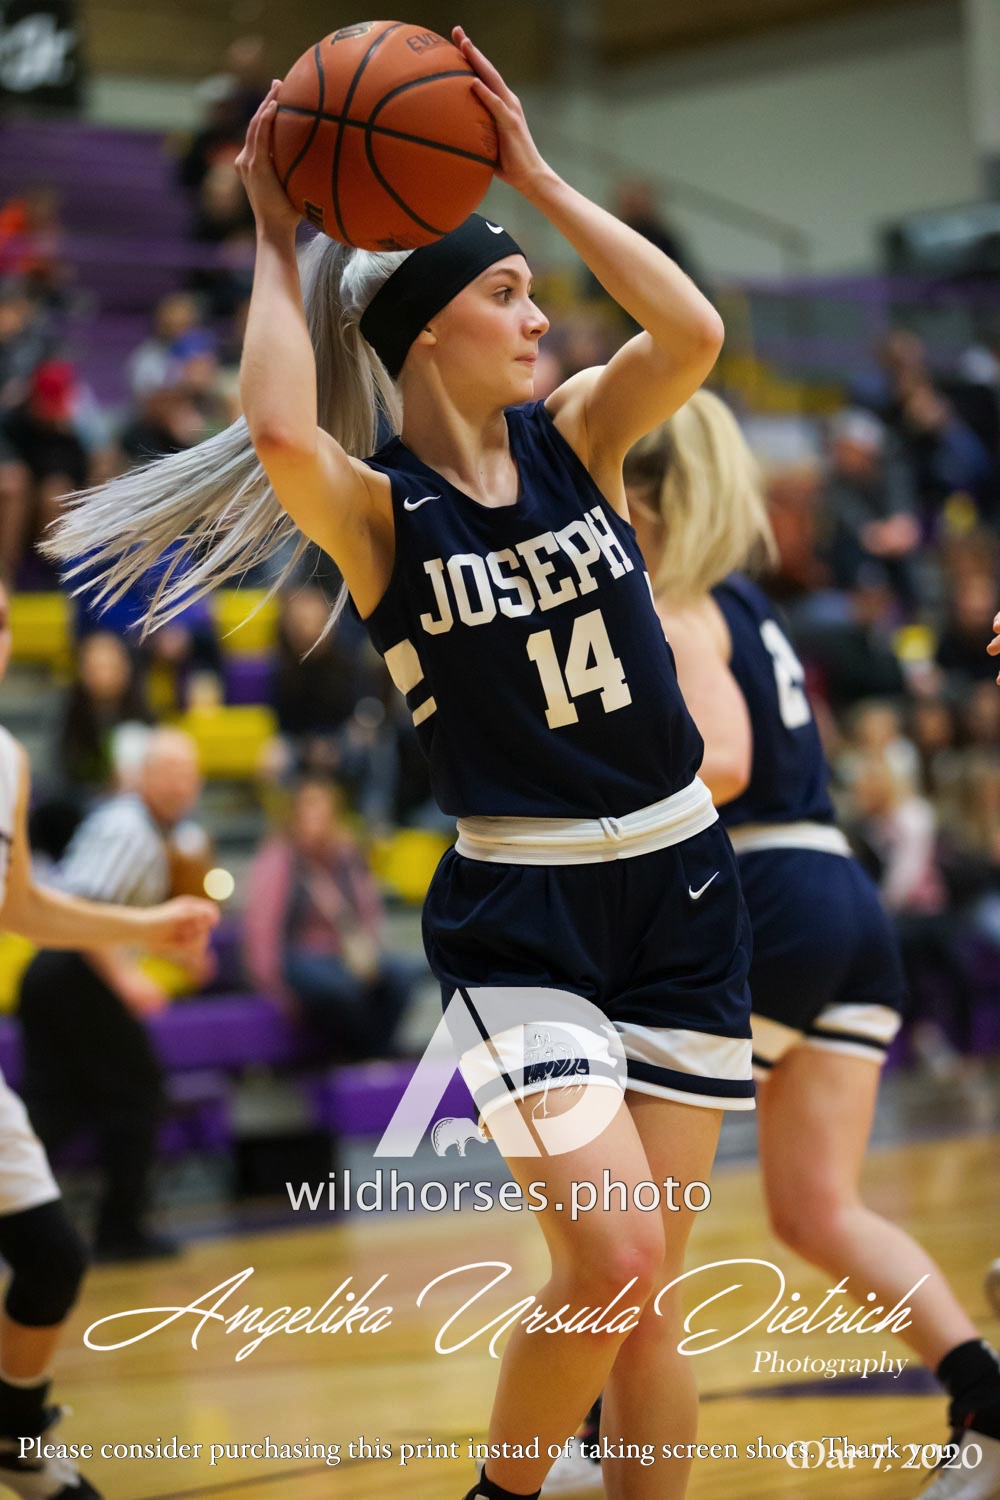 Joseph Eagles Ladies finish 2020 Season with 5th in State